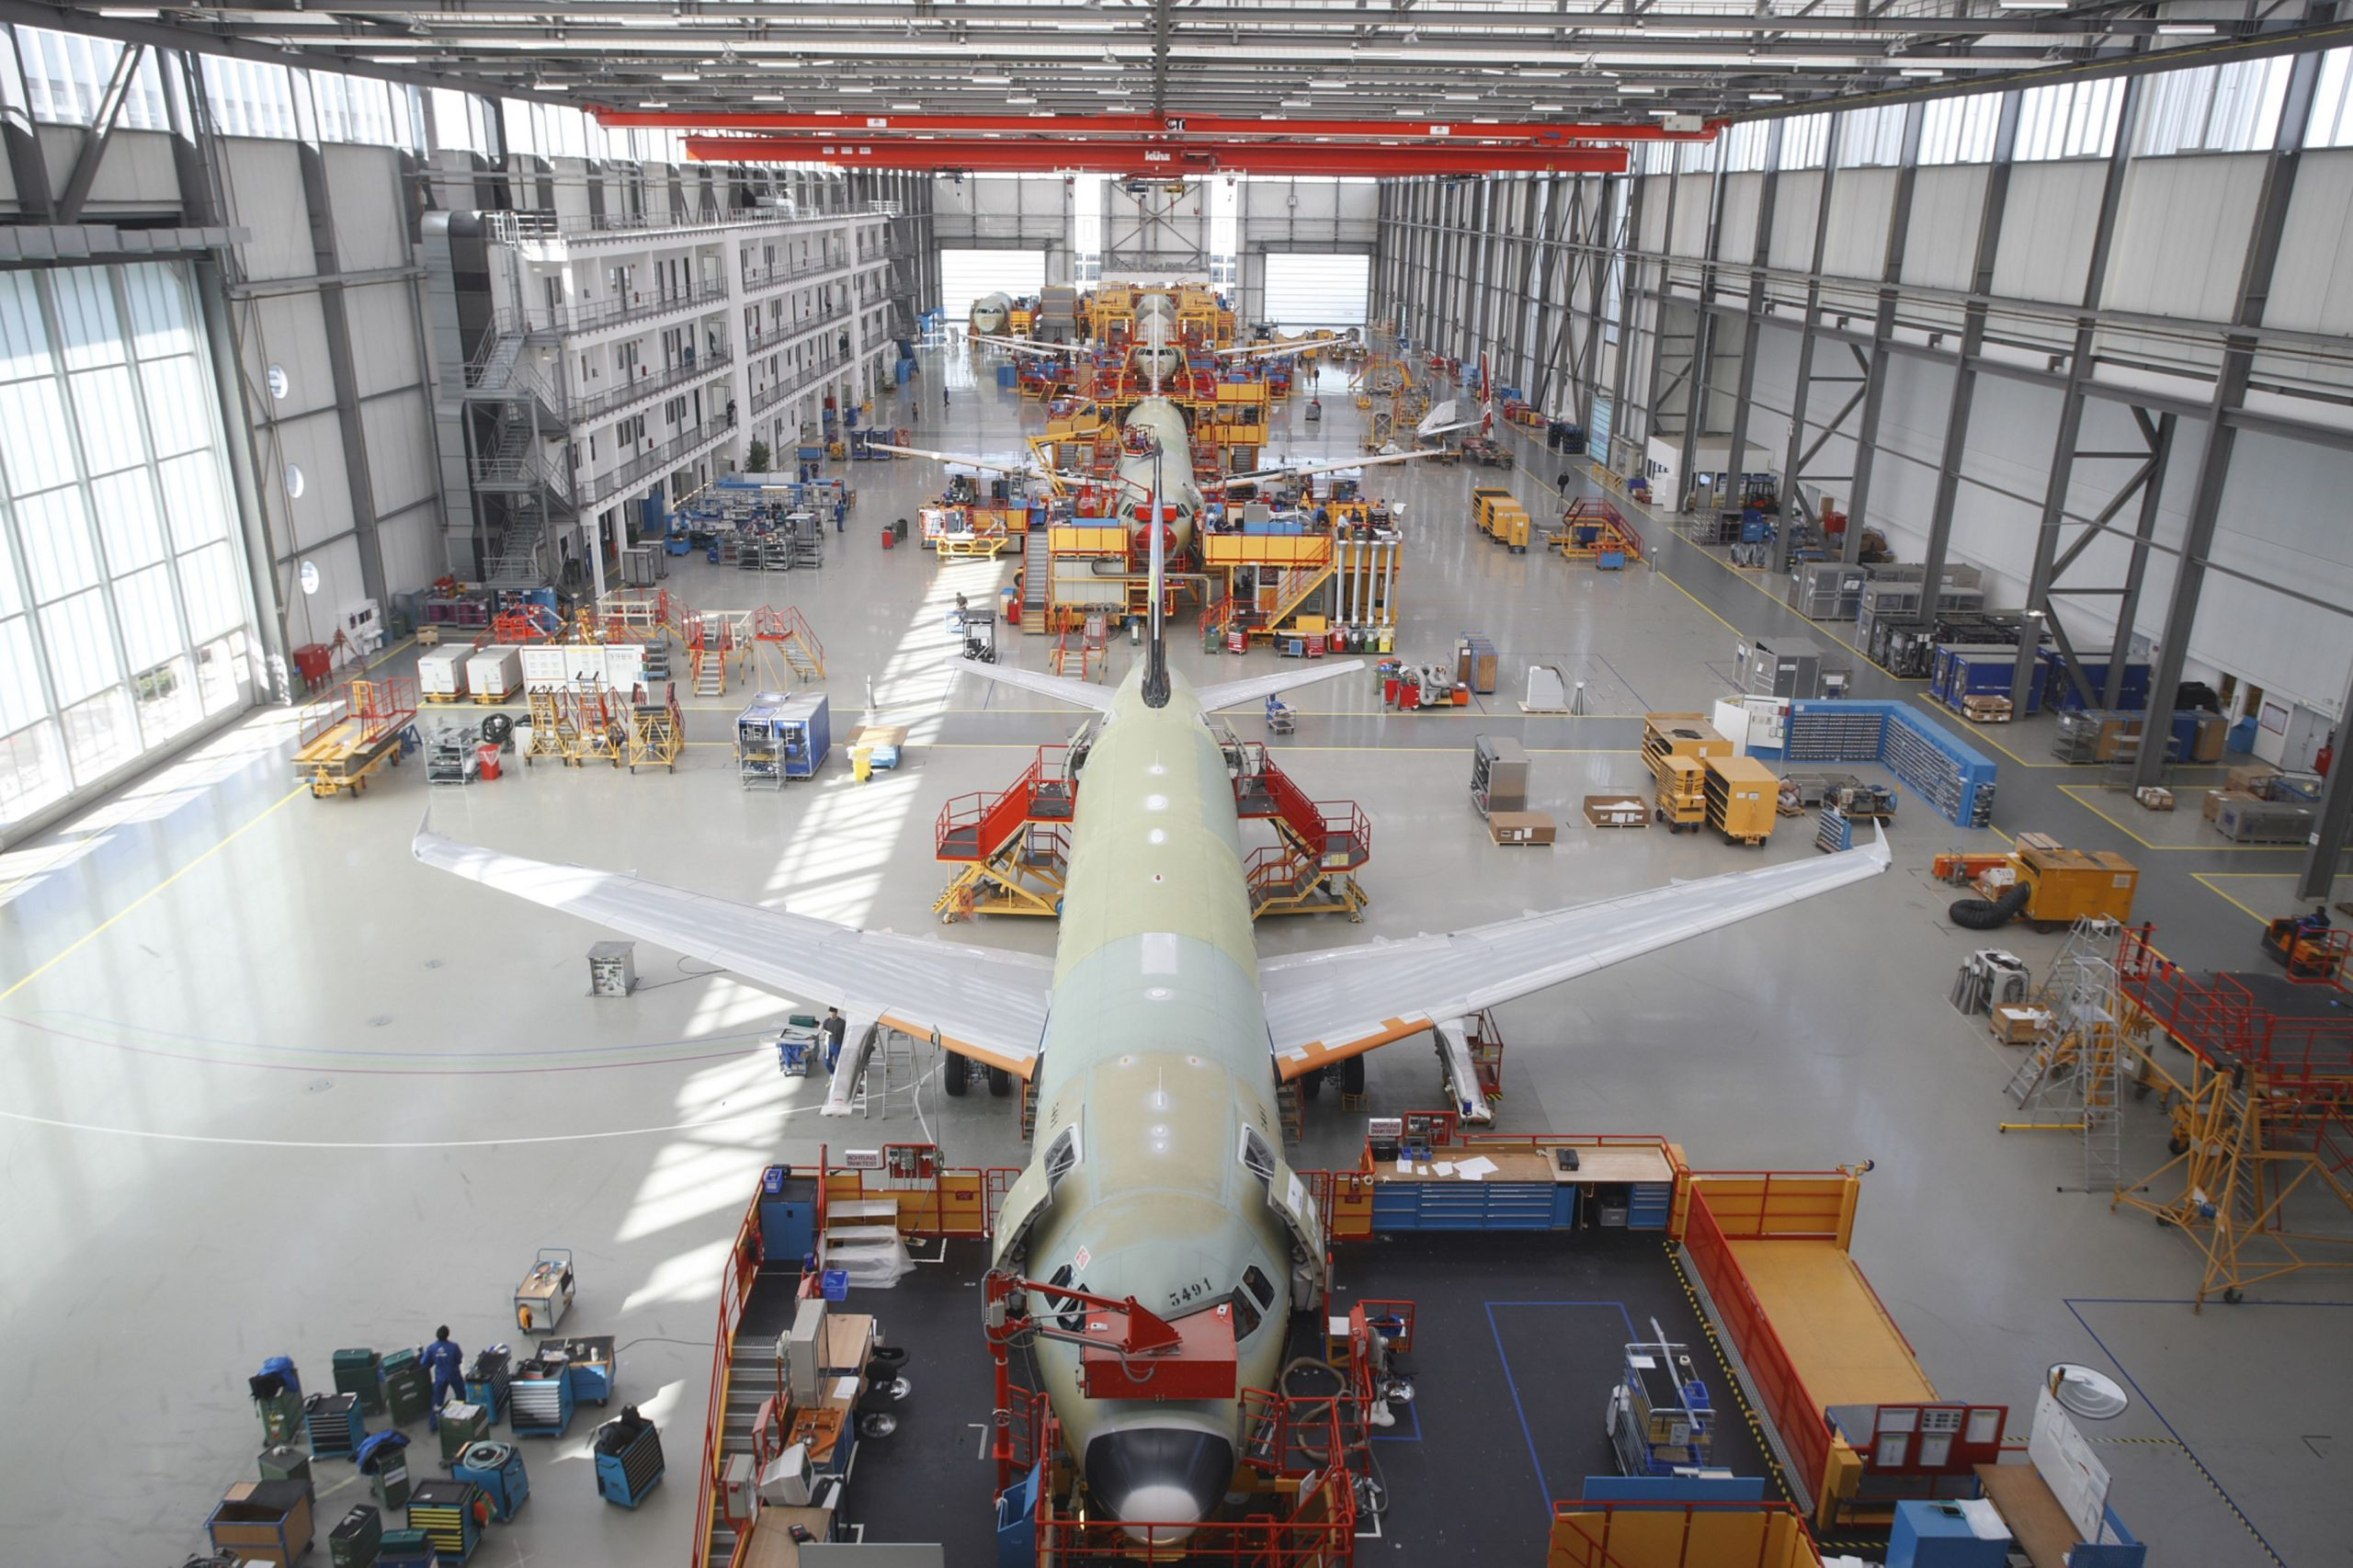 Airbus A320 production facility. Photo via Airbus.